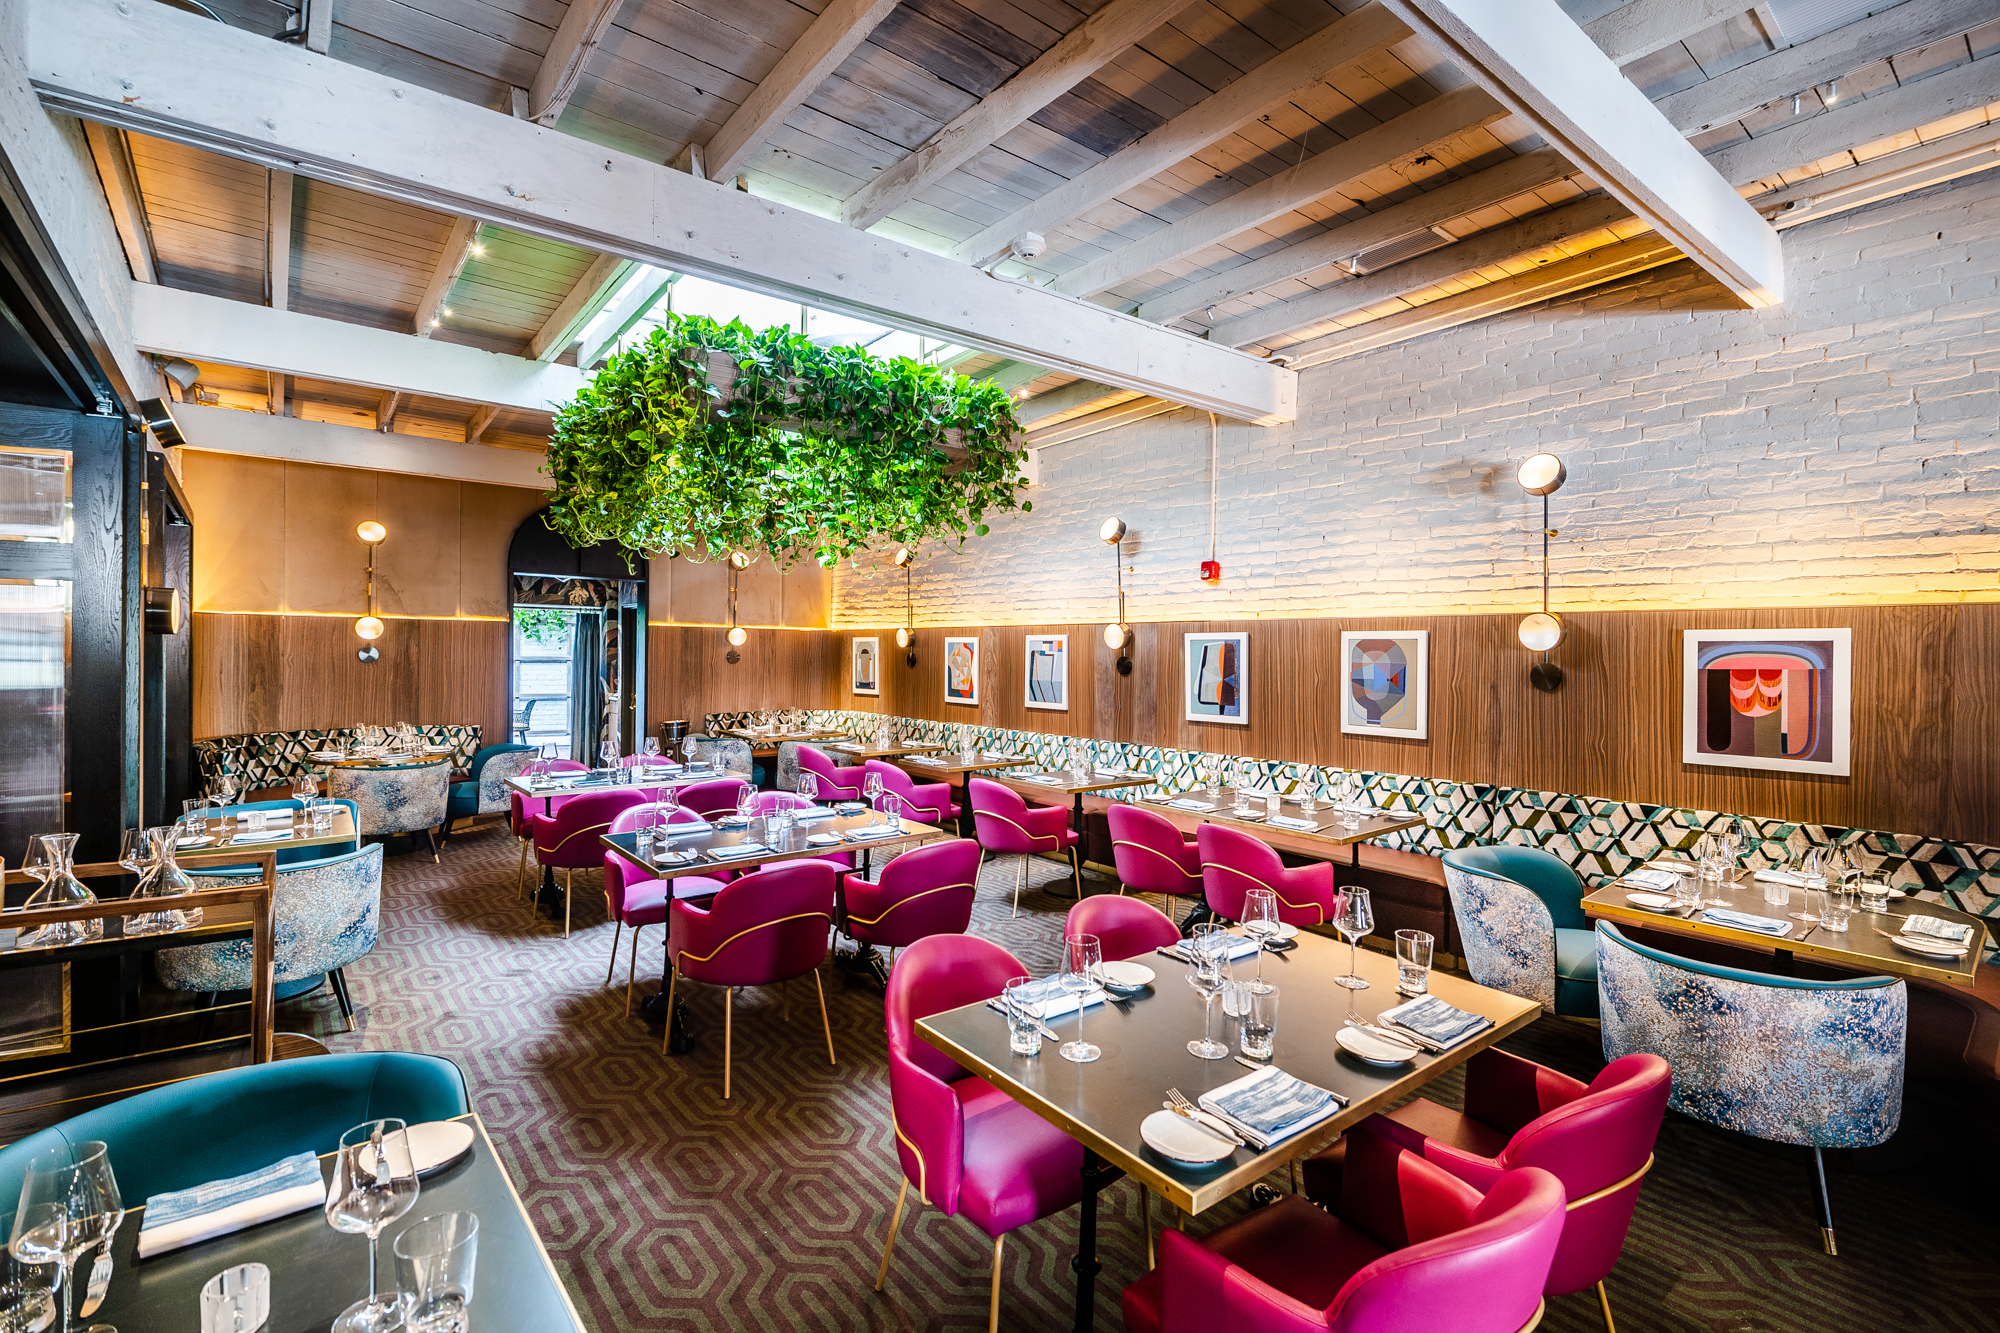 Cush pink chairs surrounding dining room tables in the middle of a main room covered in wood-lining, white brick, art, and green hanging plants at Annabelle